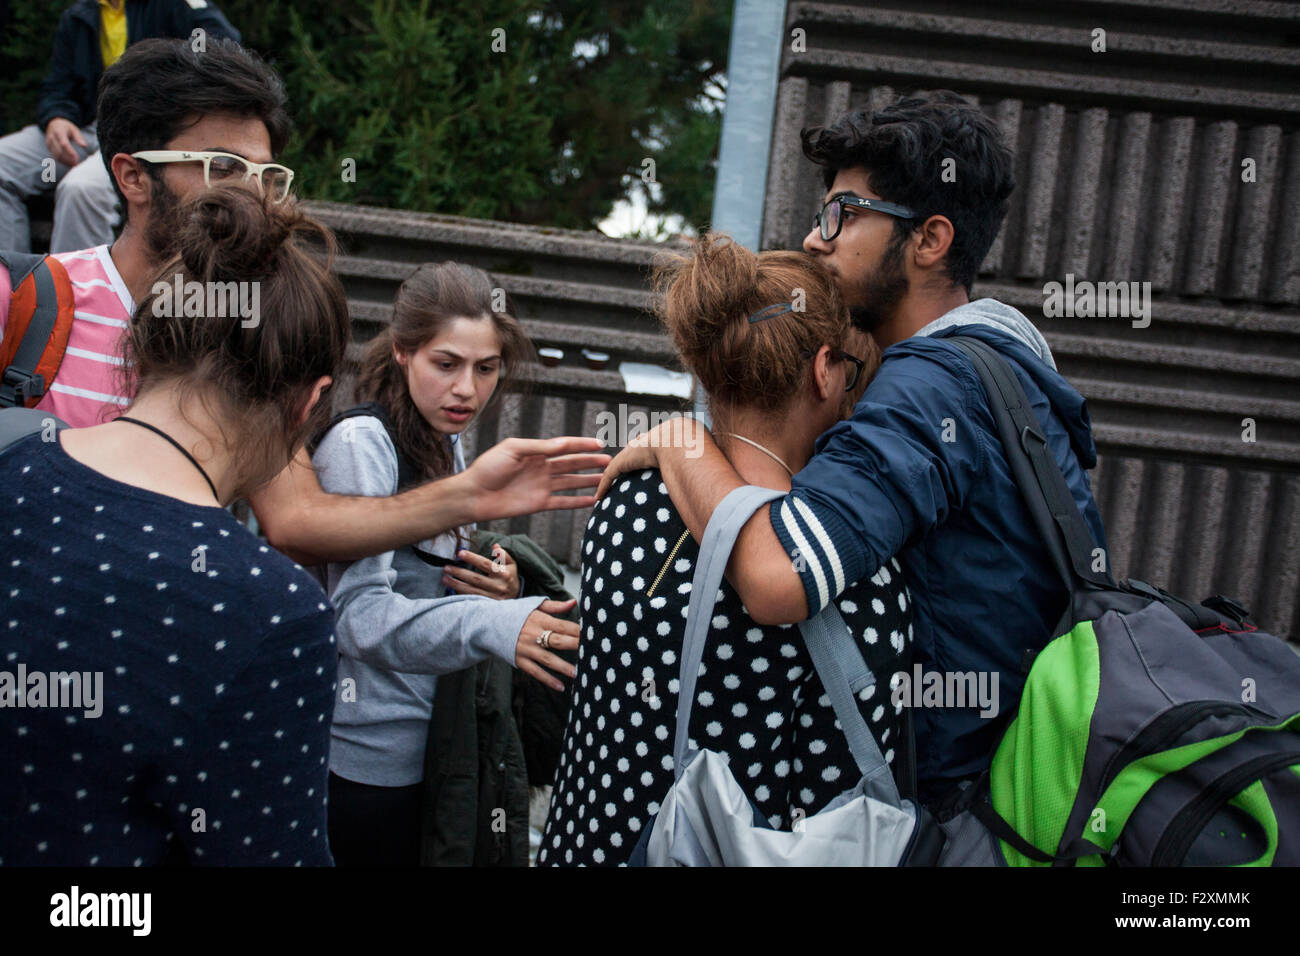 Syrian family reunited after crossing the border and entering Schengen zone at Rigonce, Slovenia - Stock Image